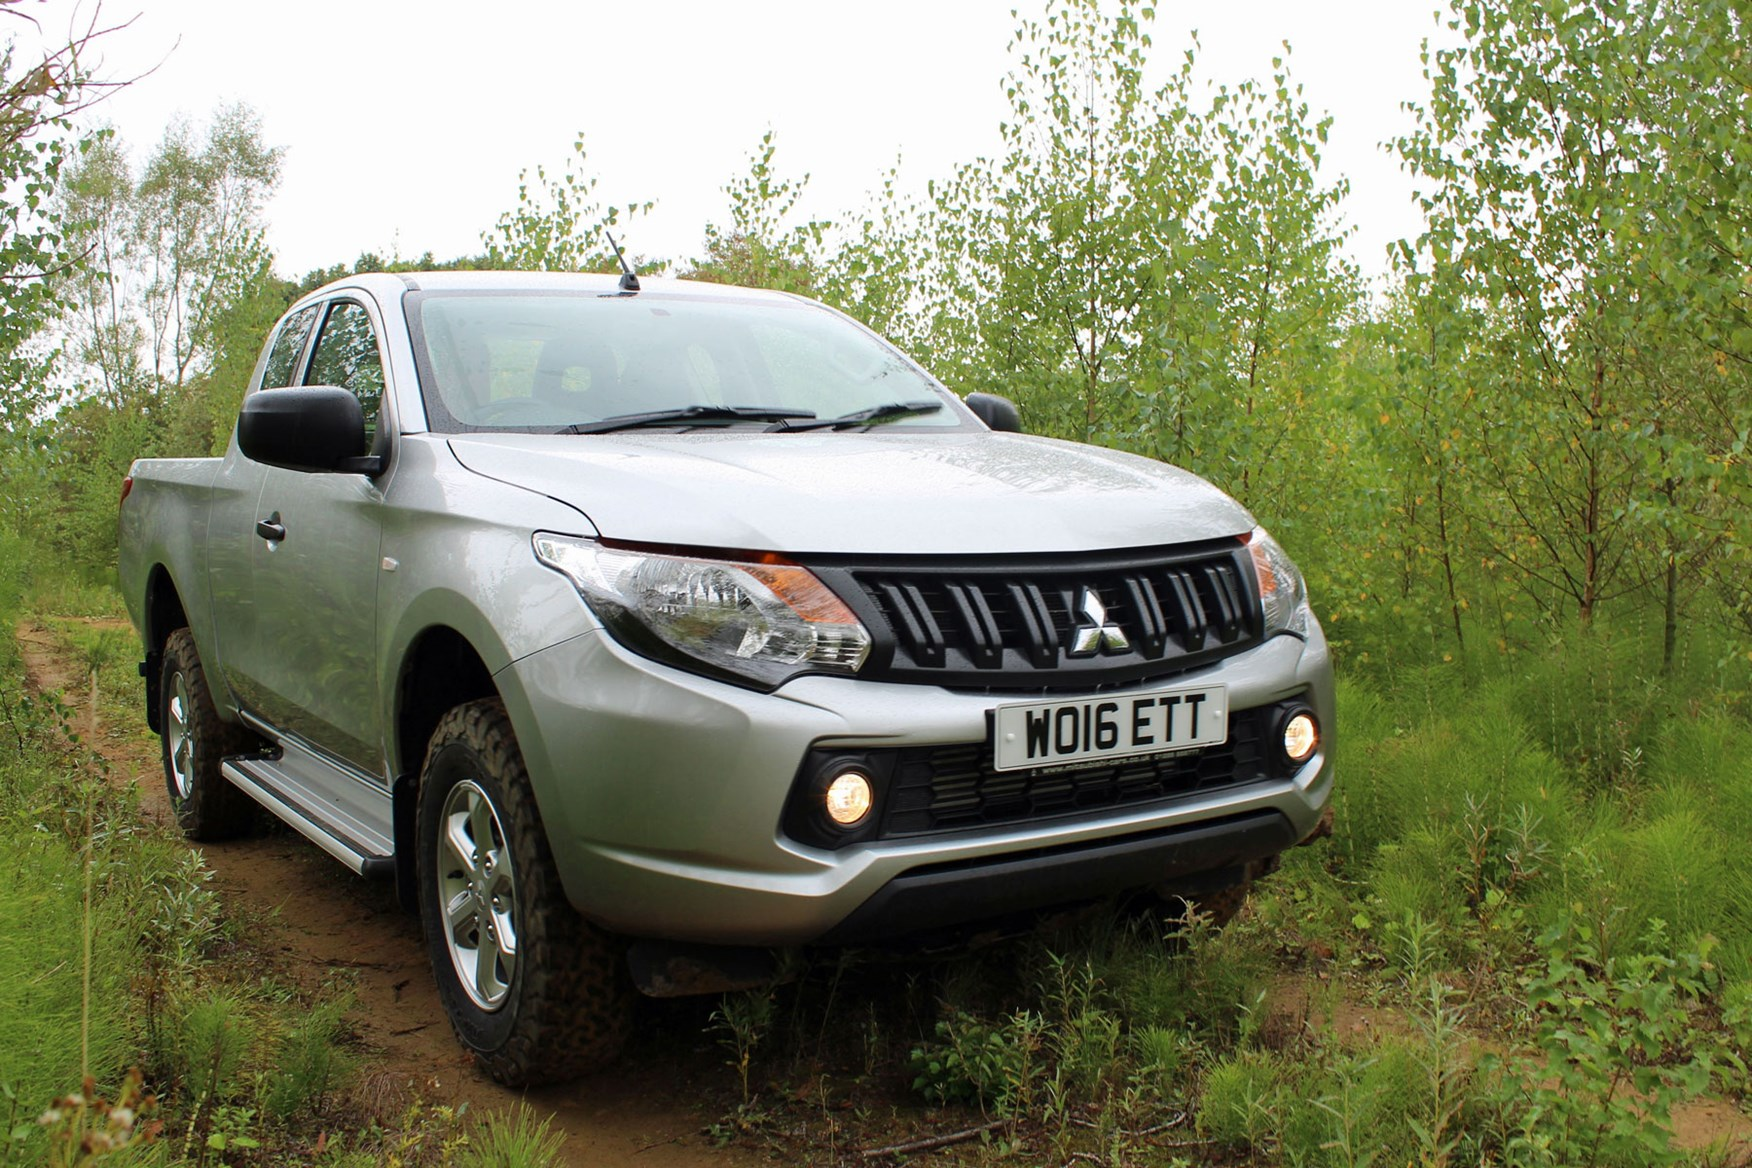 Mitsubishi L200 4Life Club Cab review - front view, driving off-road, silver